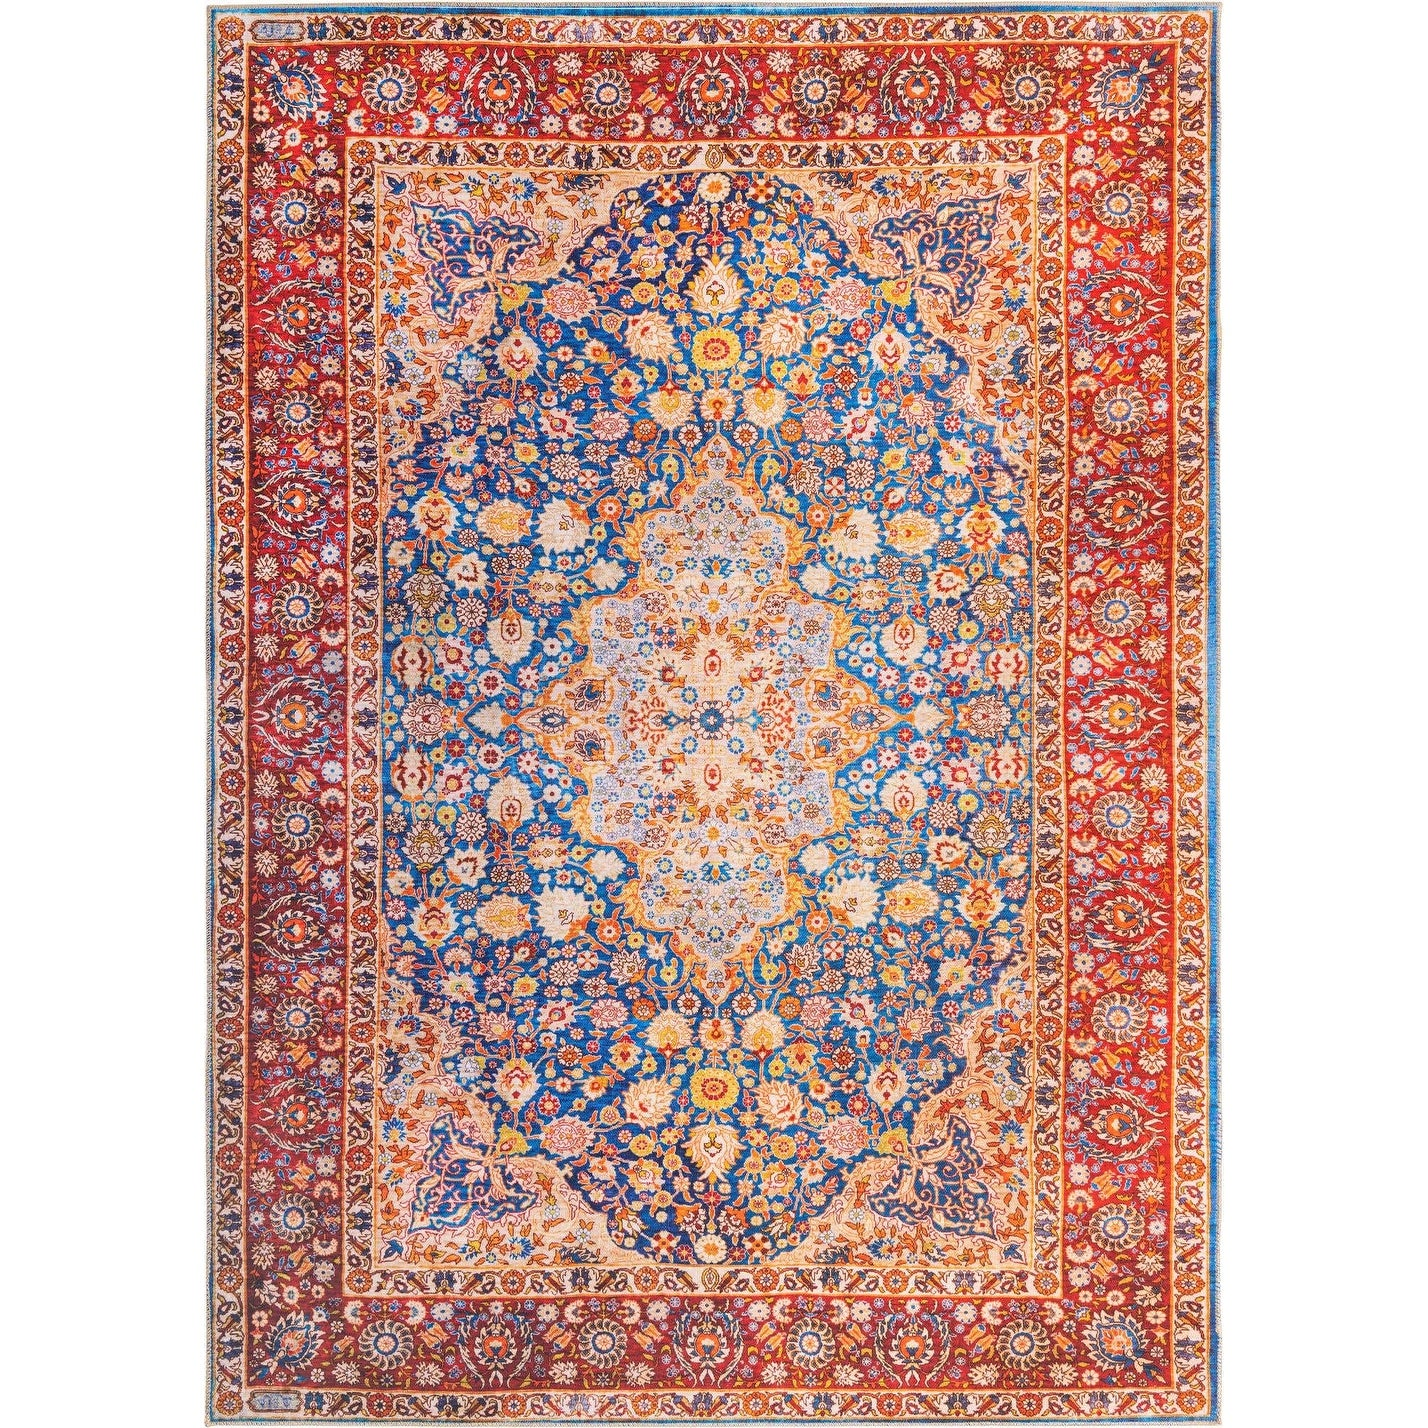 Shop For Unique Loom Revival Minerva Area Rug Get Free Delivery On Everything At Overstock Your Online Home Decor Store Get 5 In Rewards With Club O 32695549